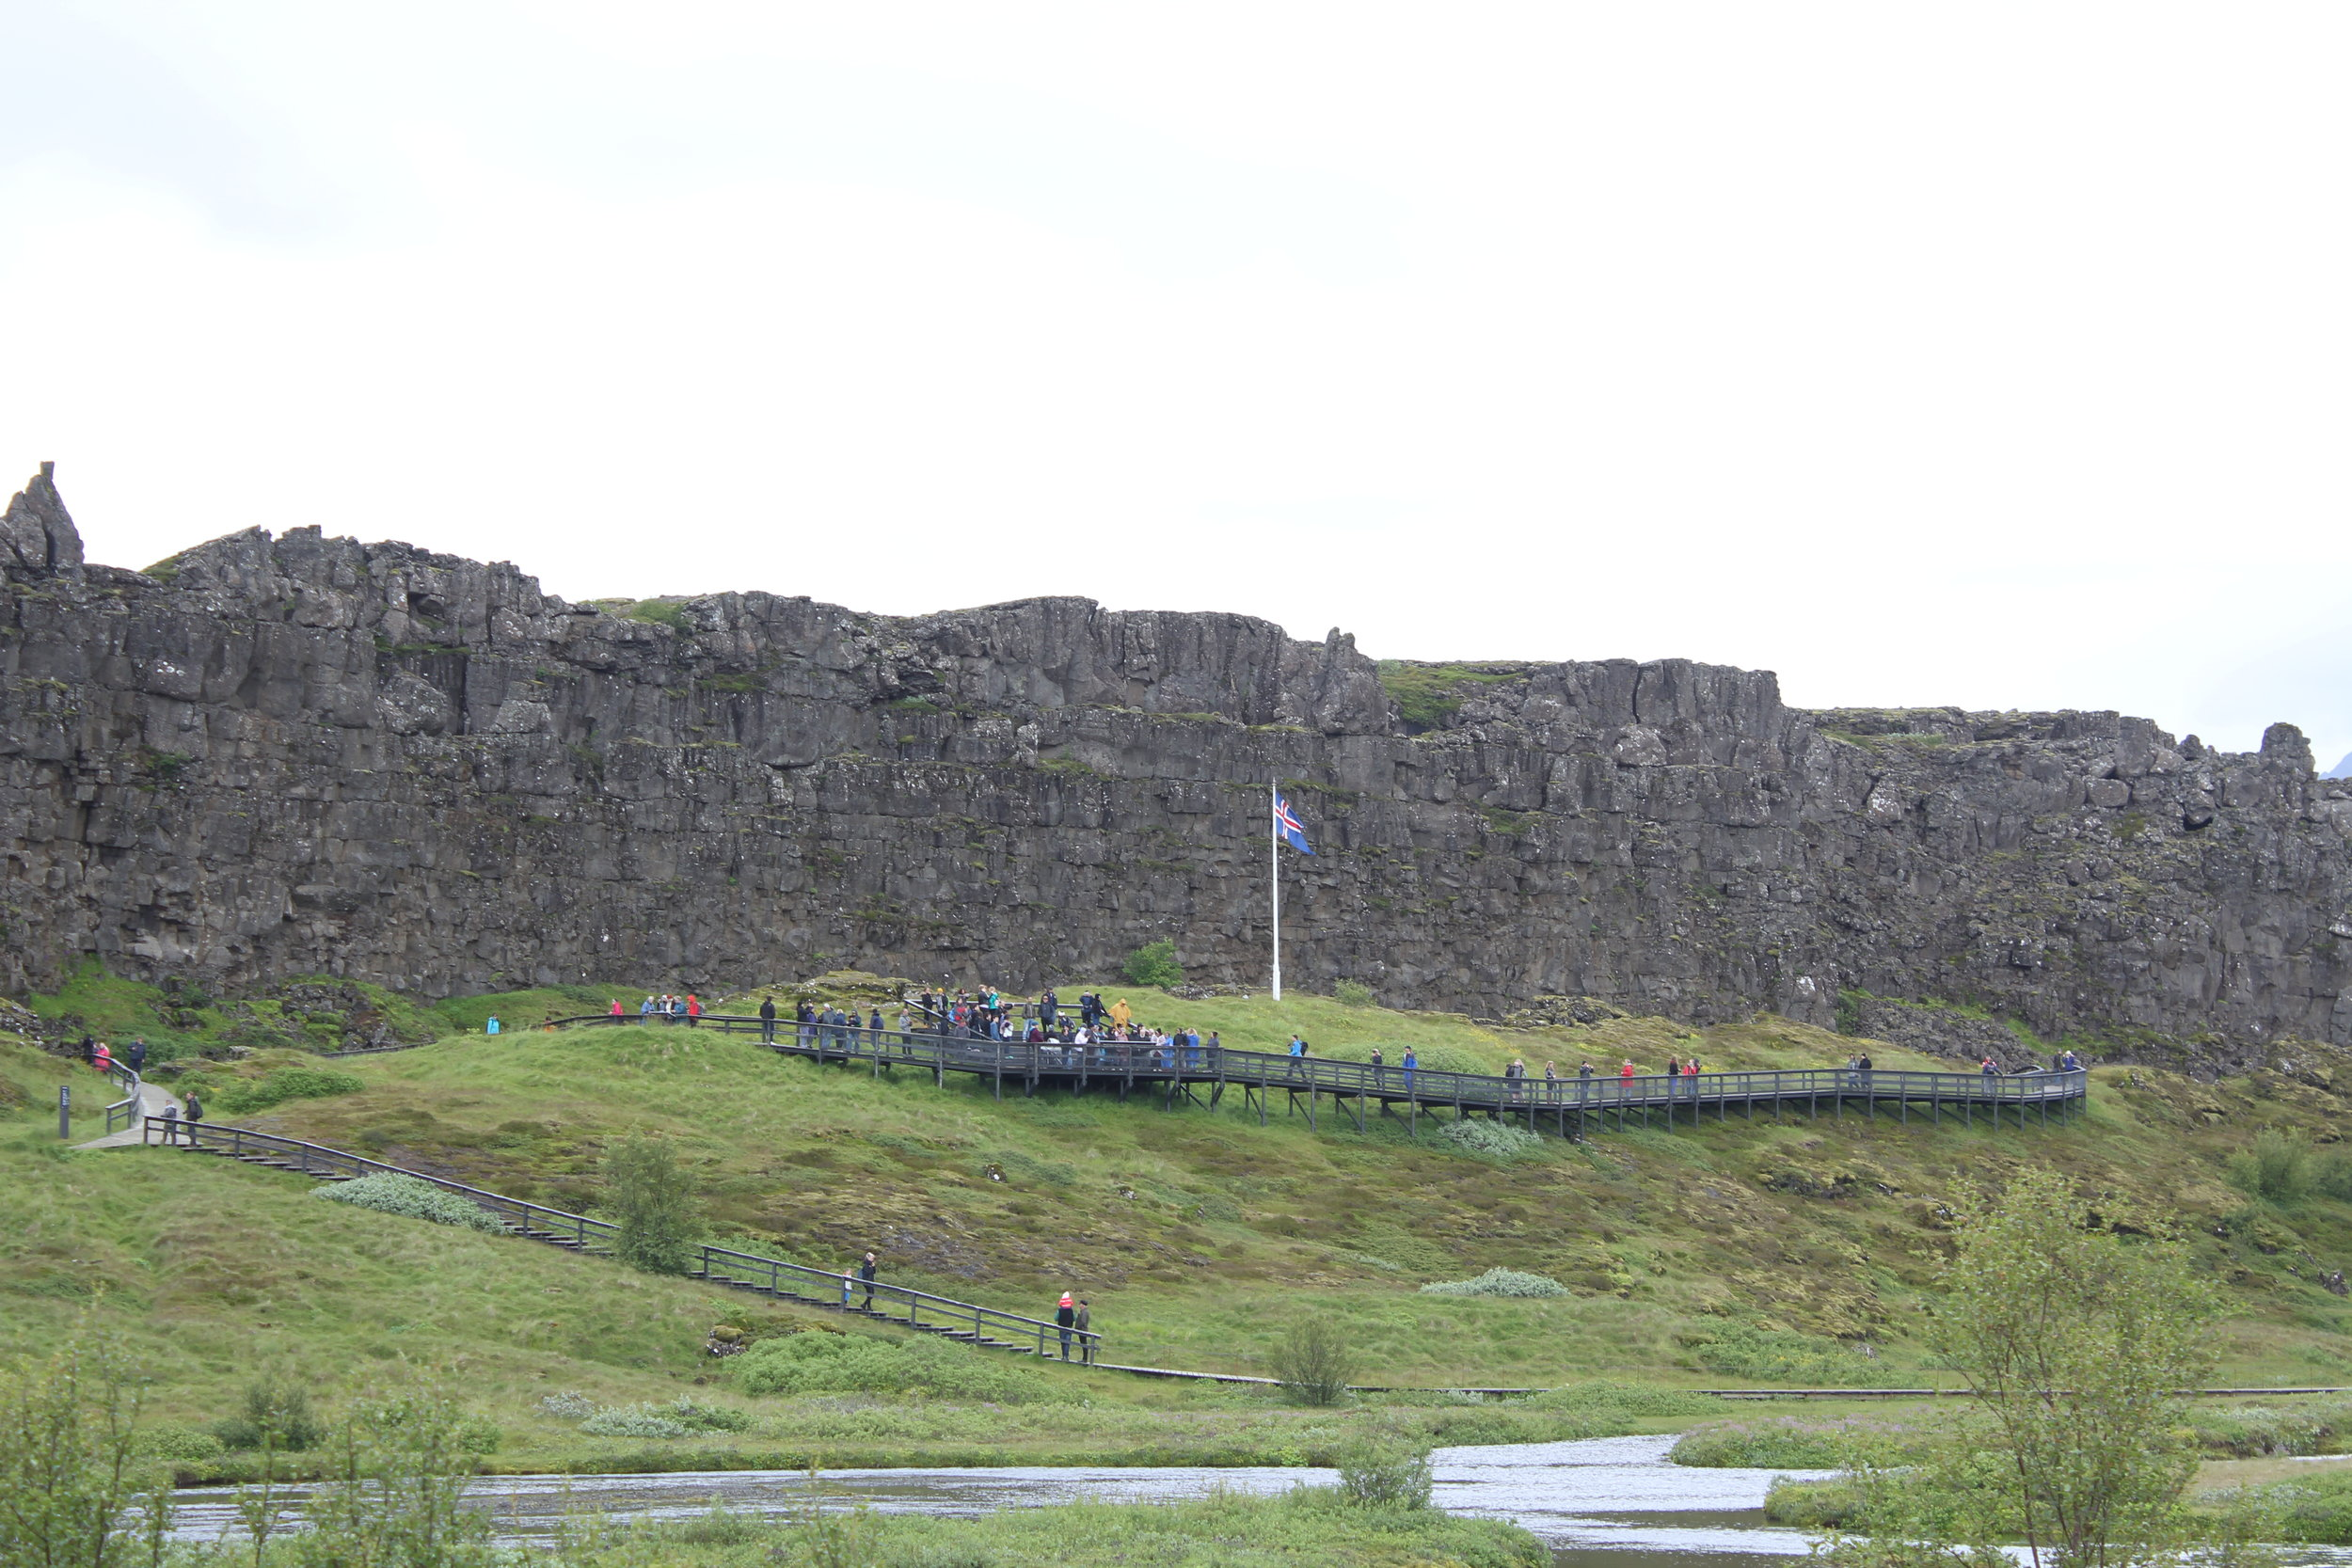 Alþingi - the site of the ancient parliament